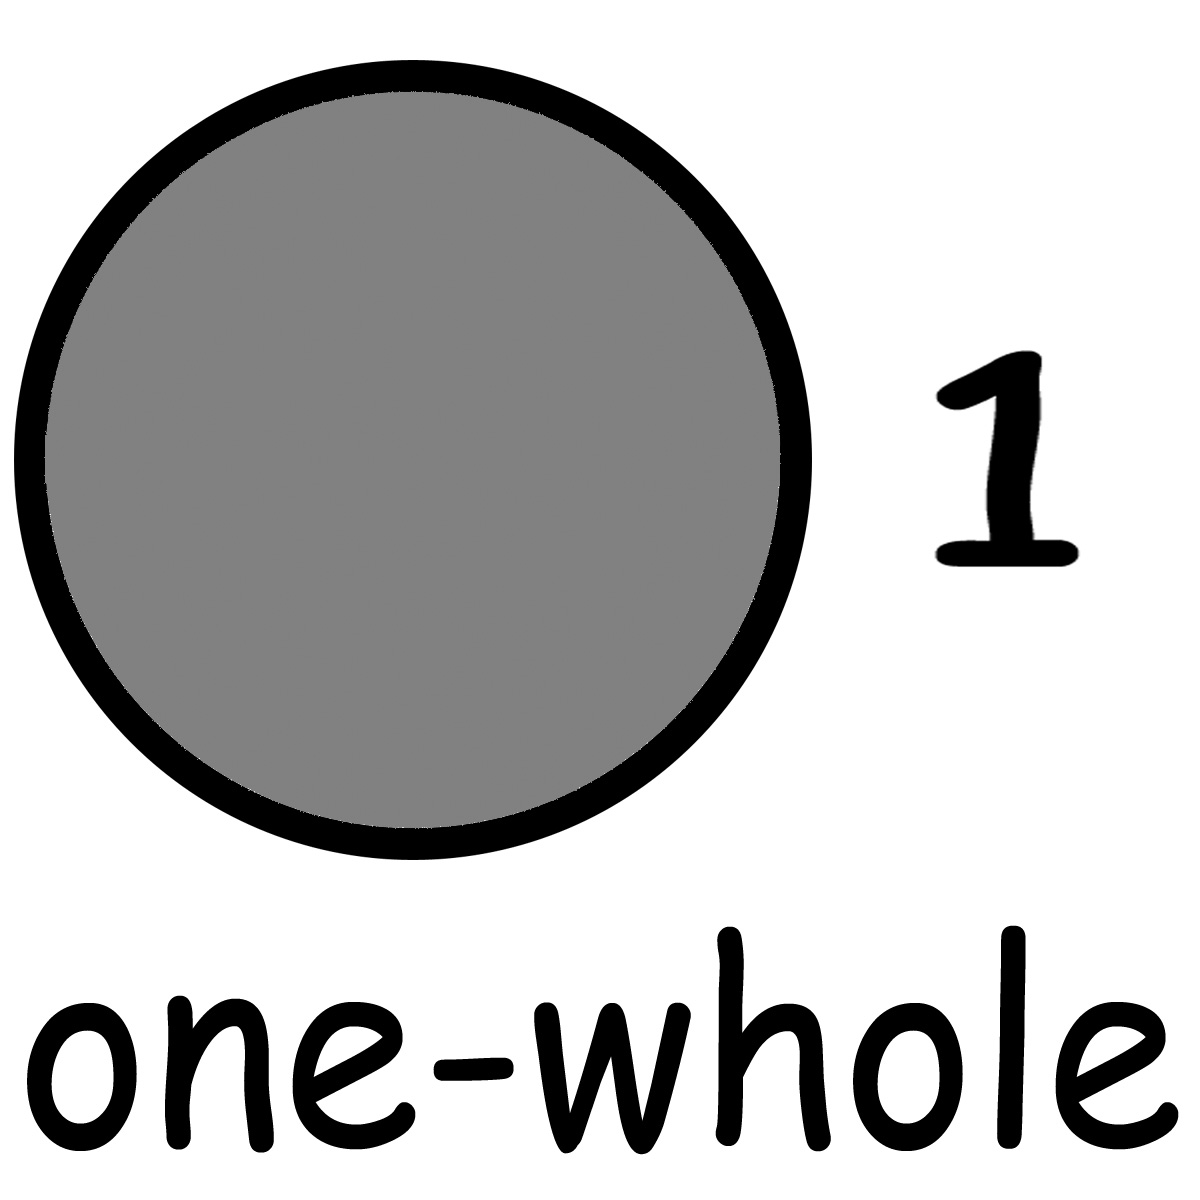 Fraction clipart whole. Panda free images